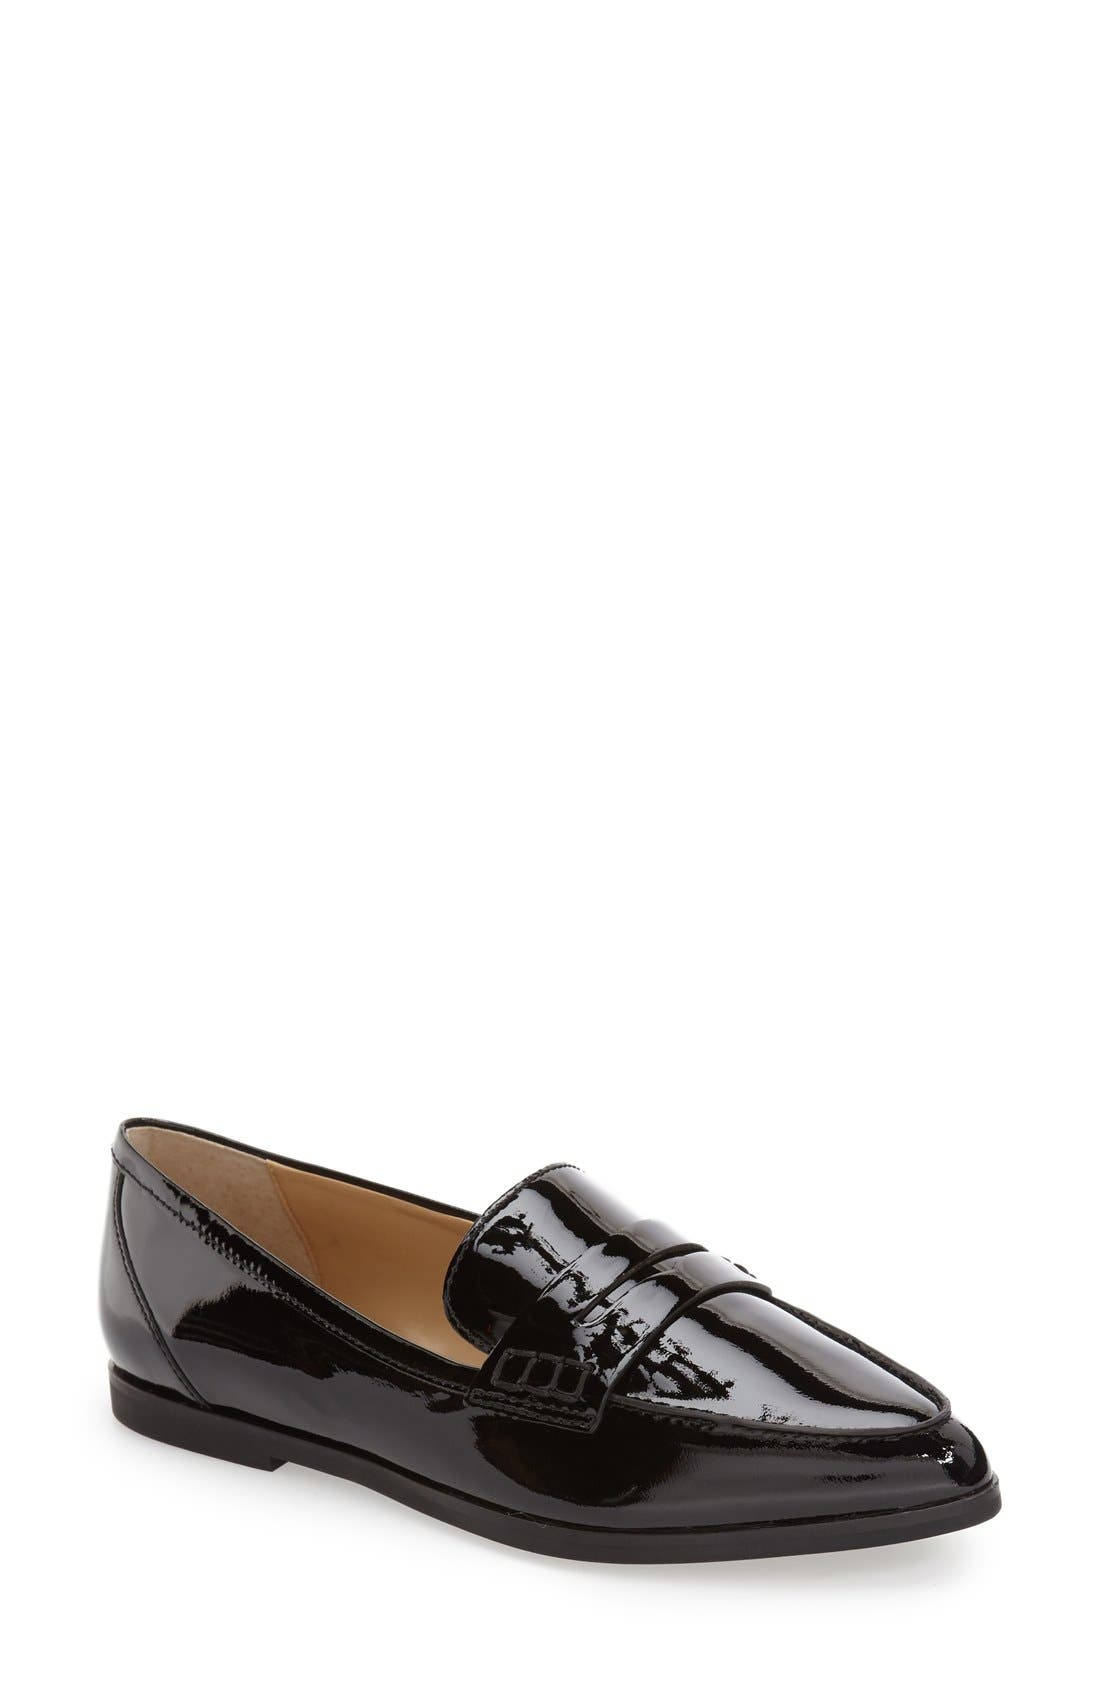 Main Image - MICHAEL Michael Kors 'Connor' Penny Loafer (Women)